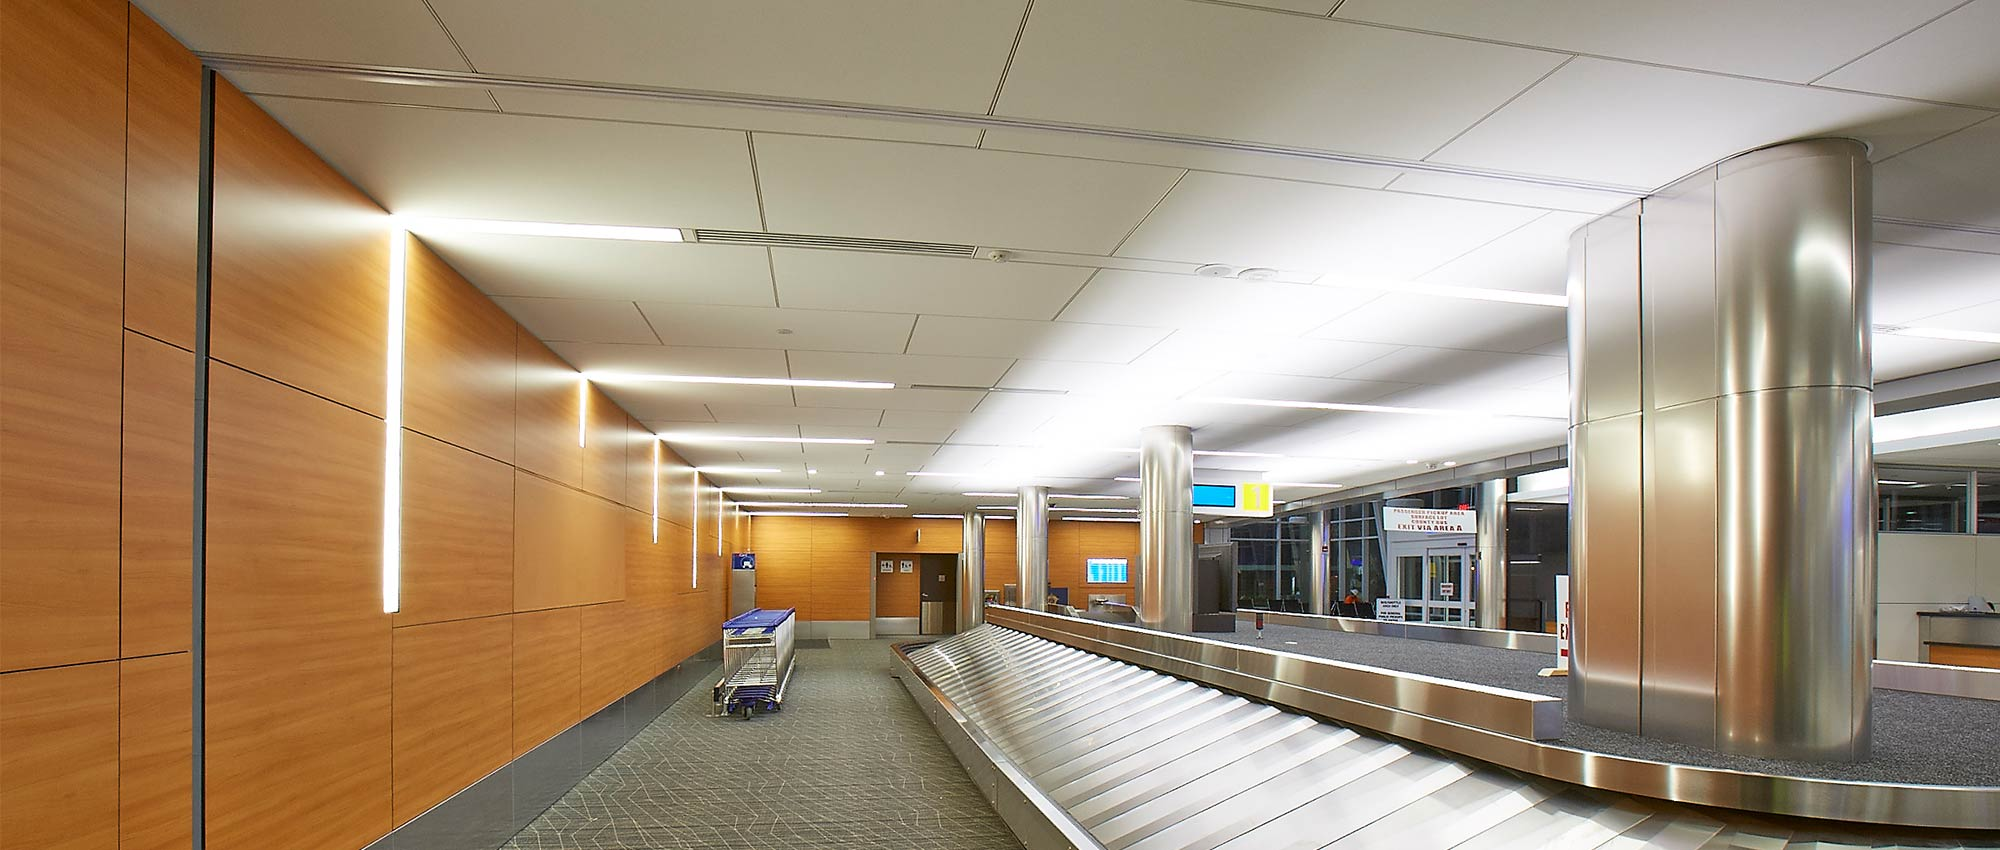 Wall And Ceiling Expansion Joint Covers Archives Inpro